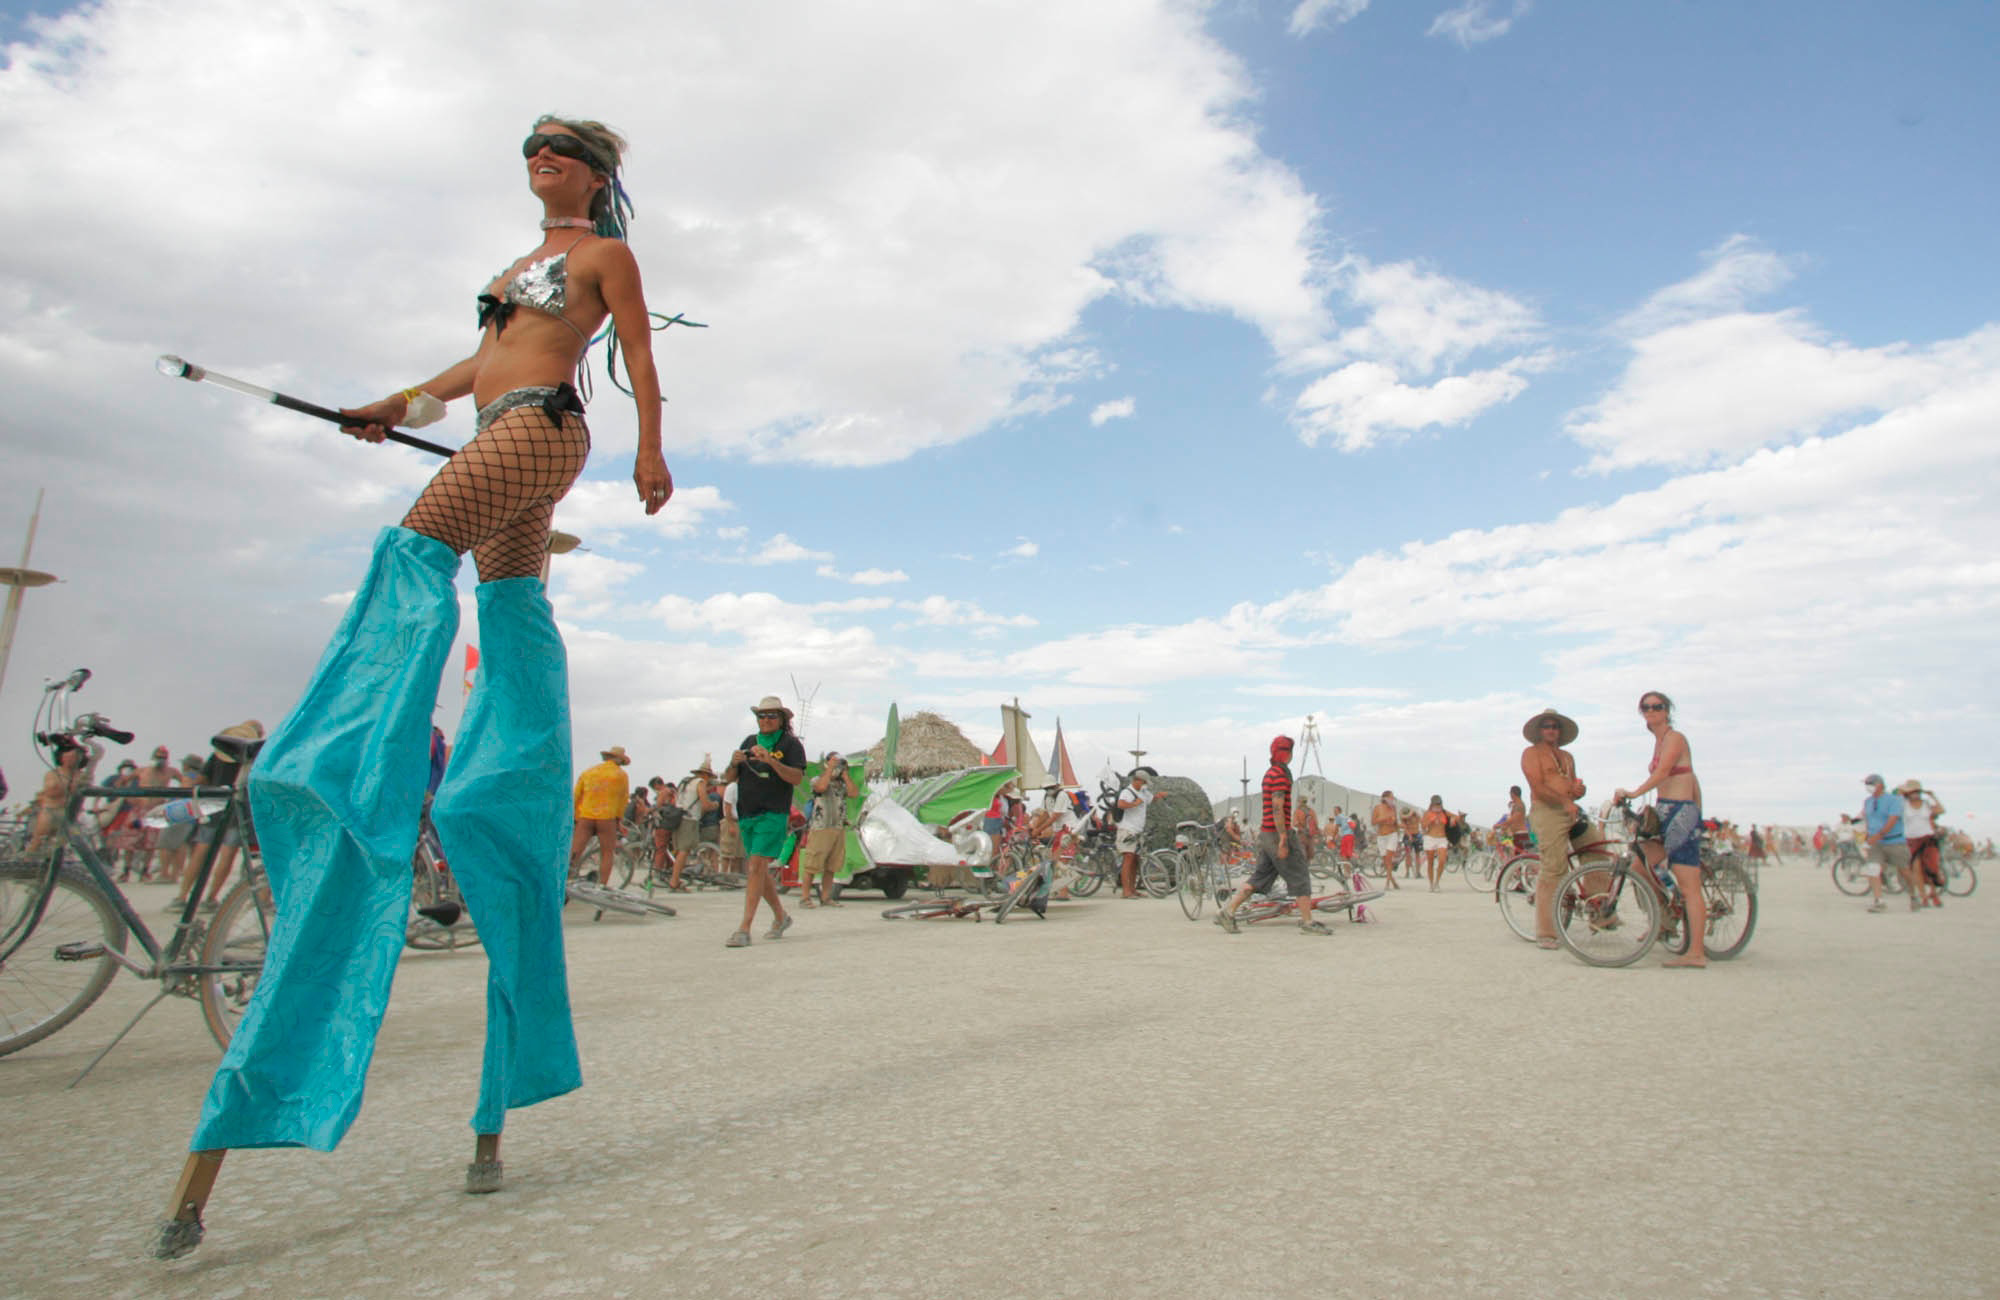 People Did Some Weird Sh*t At Burning Man Festival This Year PA 5072125